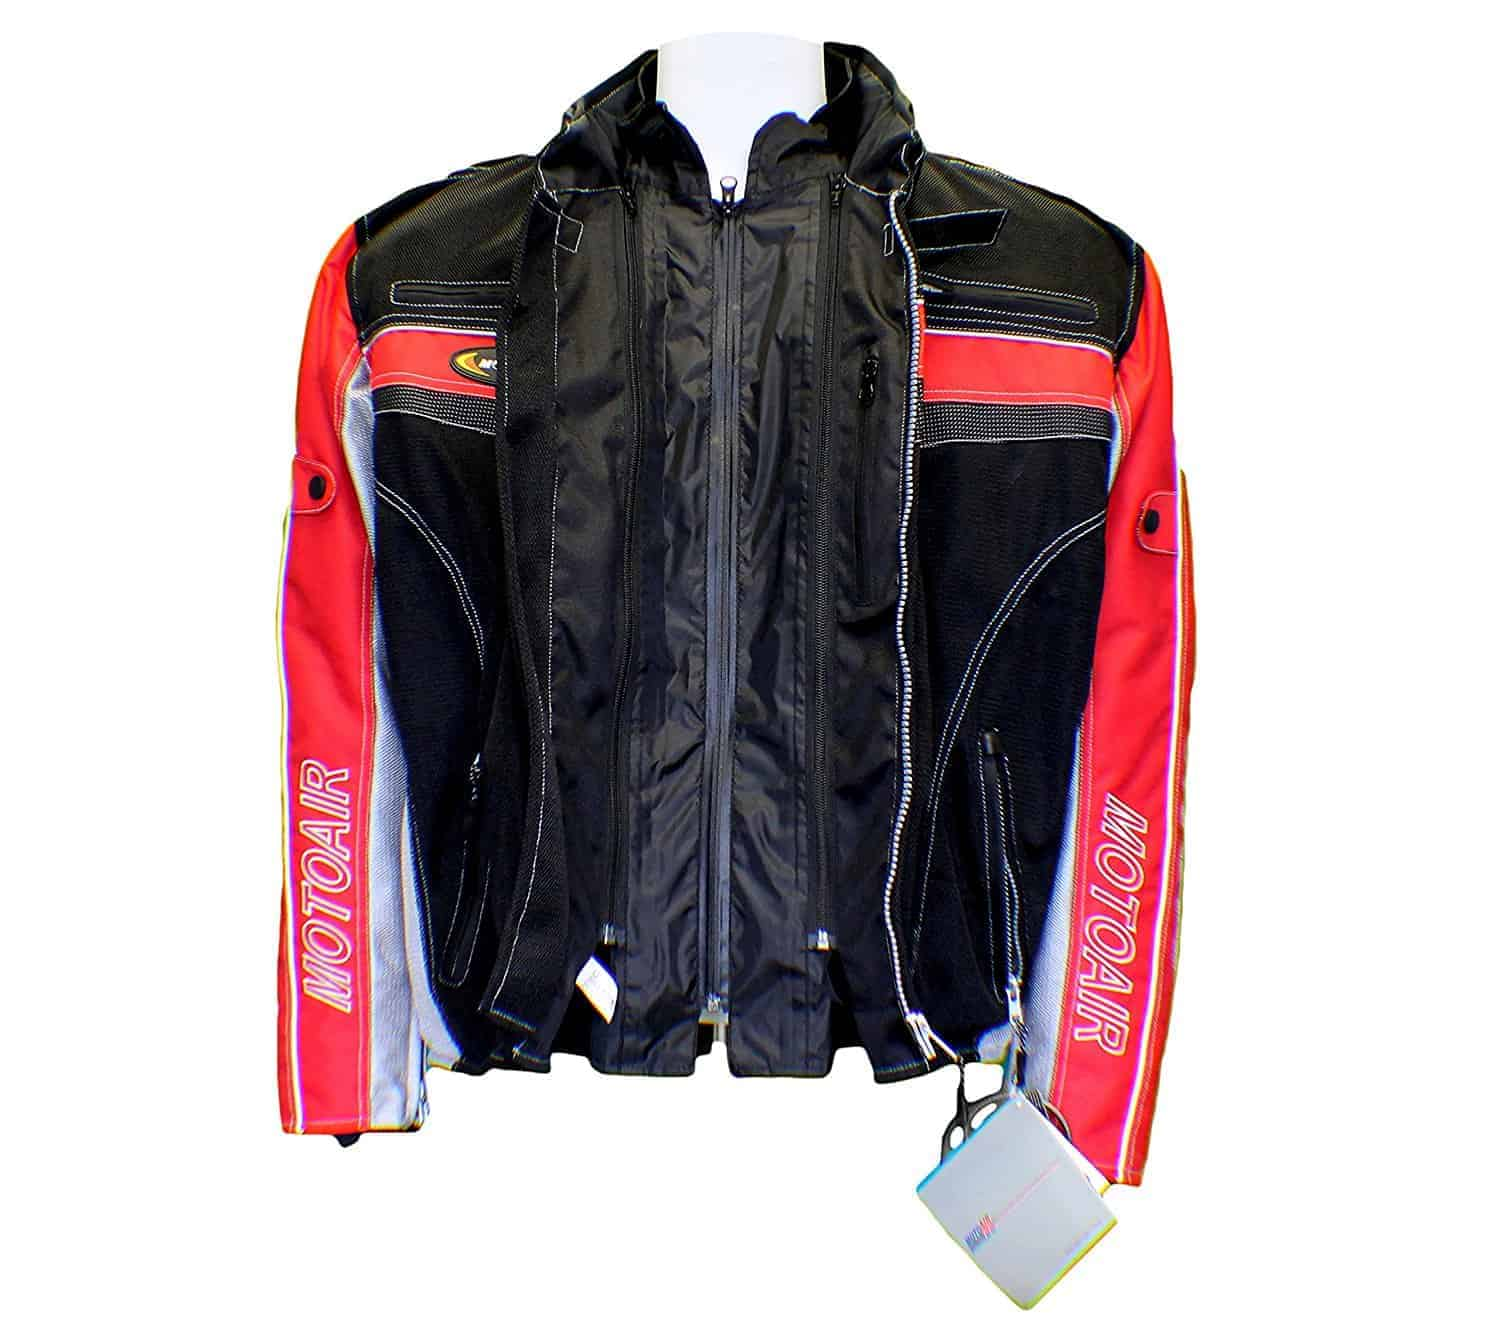 MotoAir M-600 Airbag Jacket